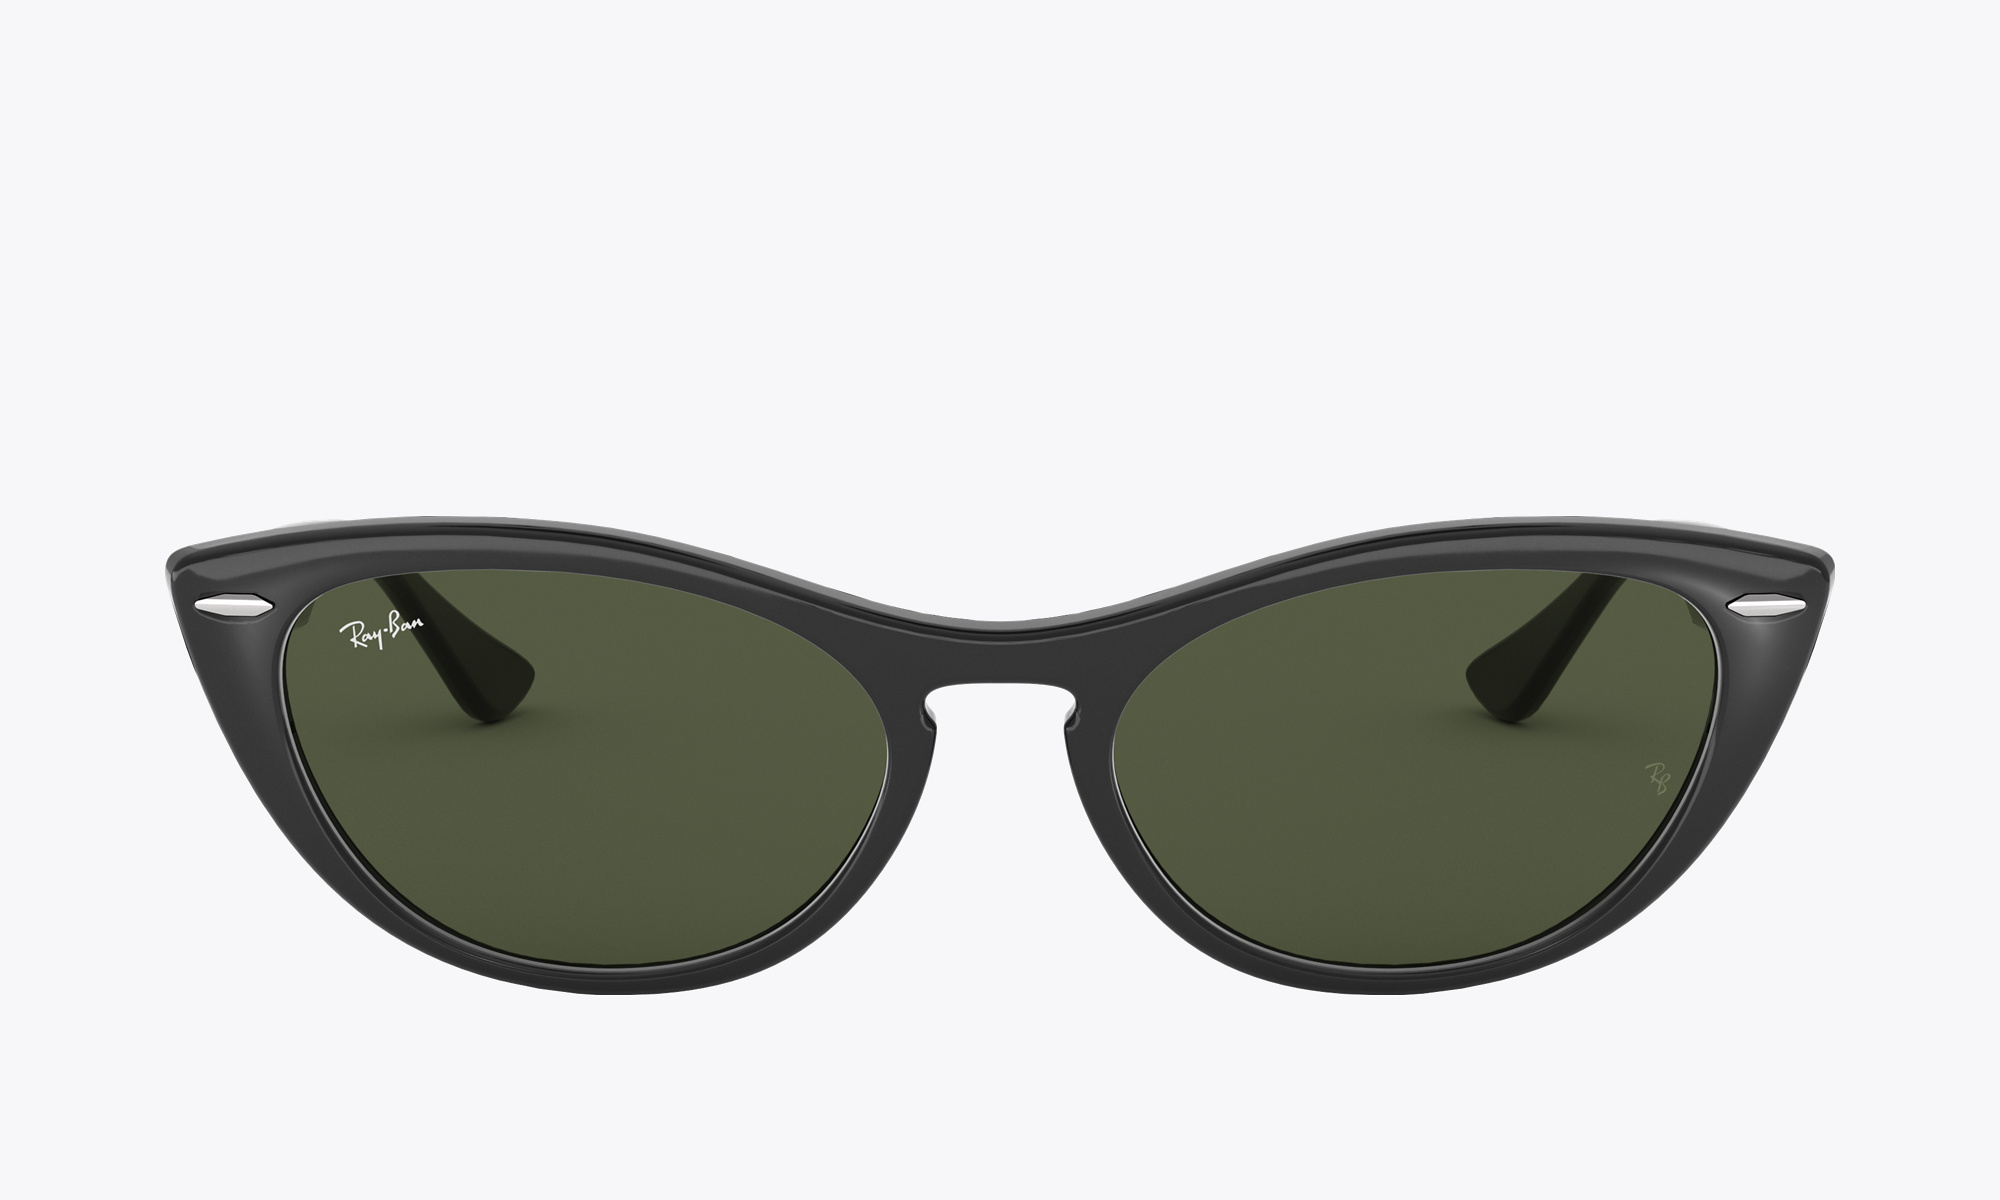 Image of Ray-Ban NINA color Black